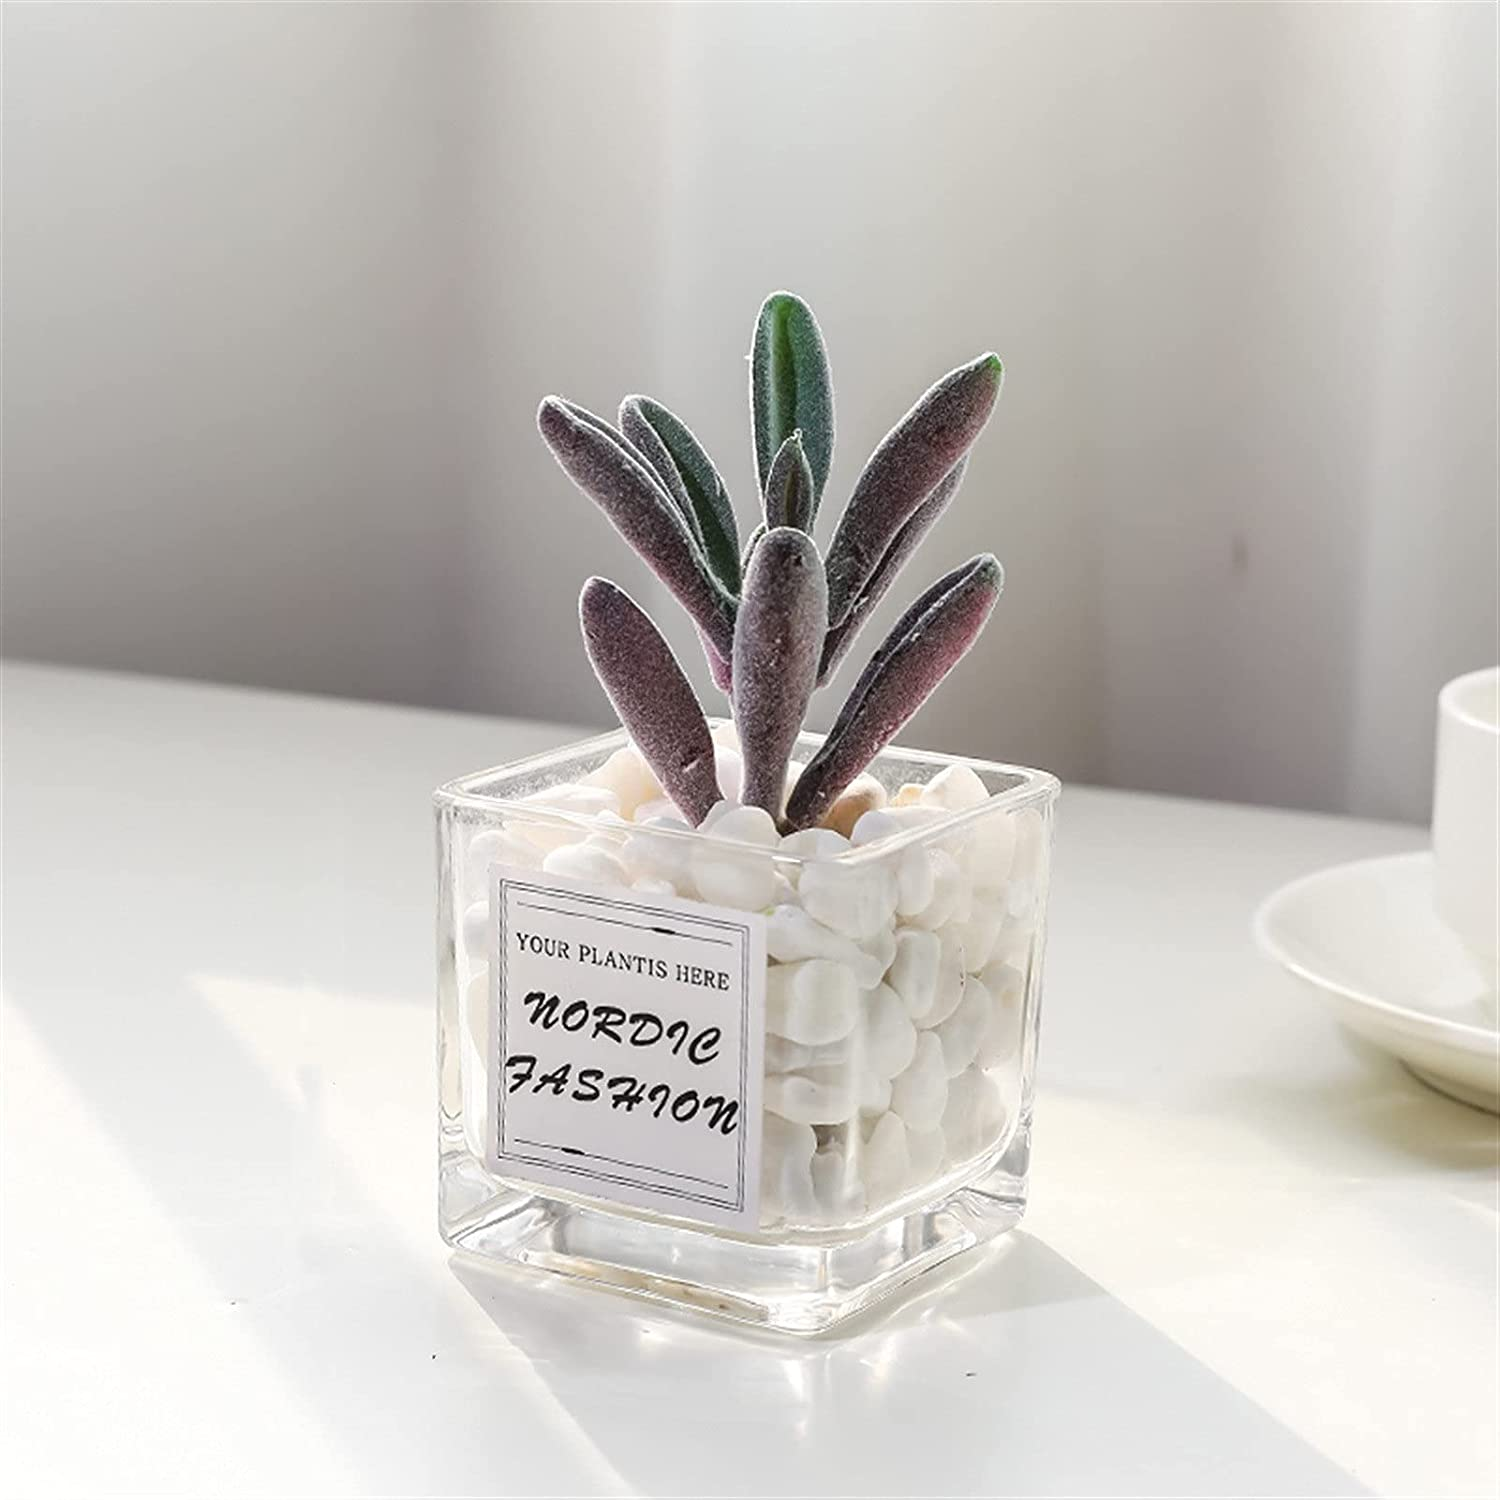 NBEEGFG Artificial Plants Simulation Green Potted Small Max 90% OFF Discount is also underway Plant Of